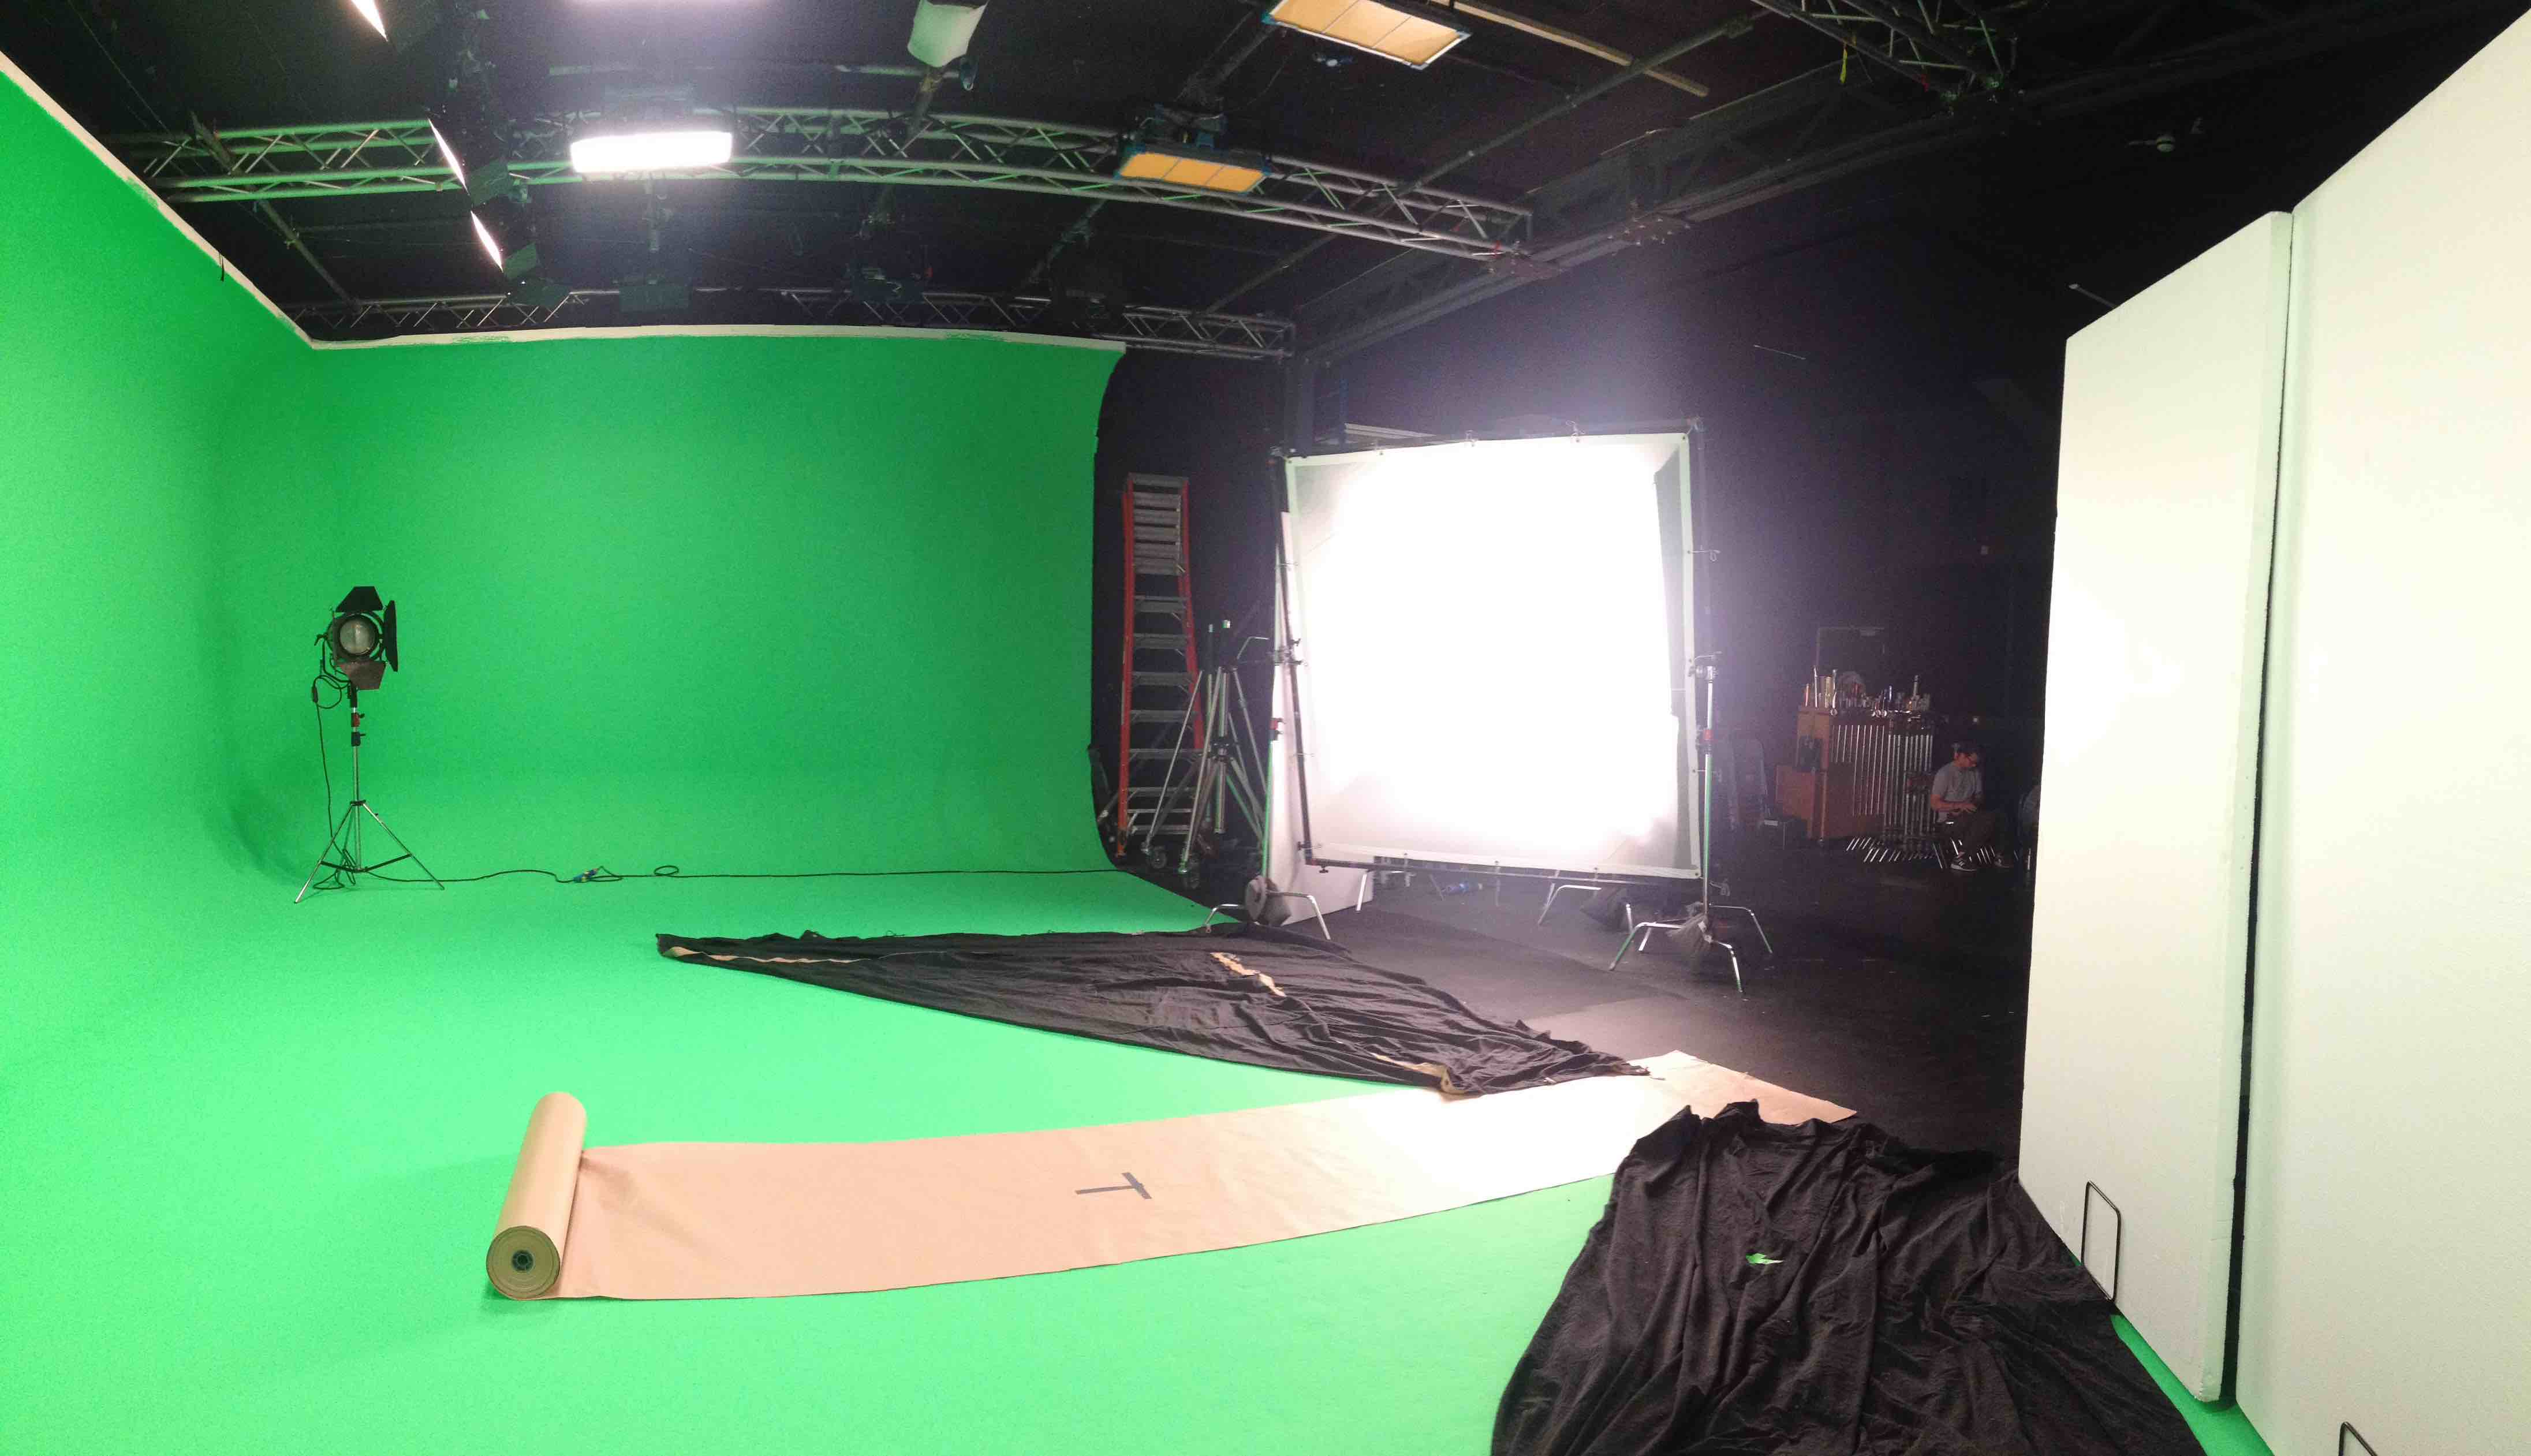 greenscreen studio setup